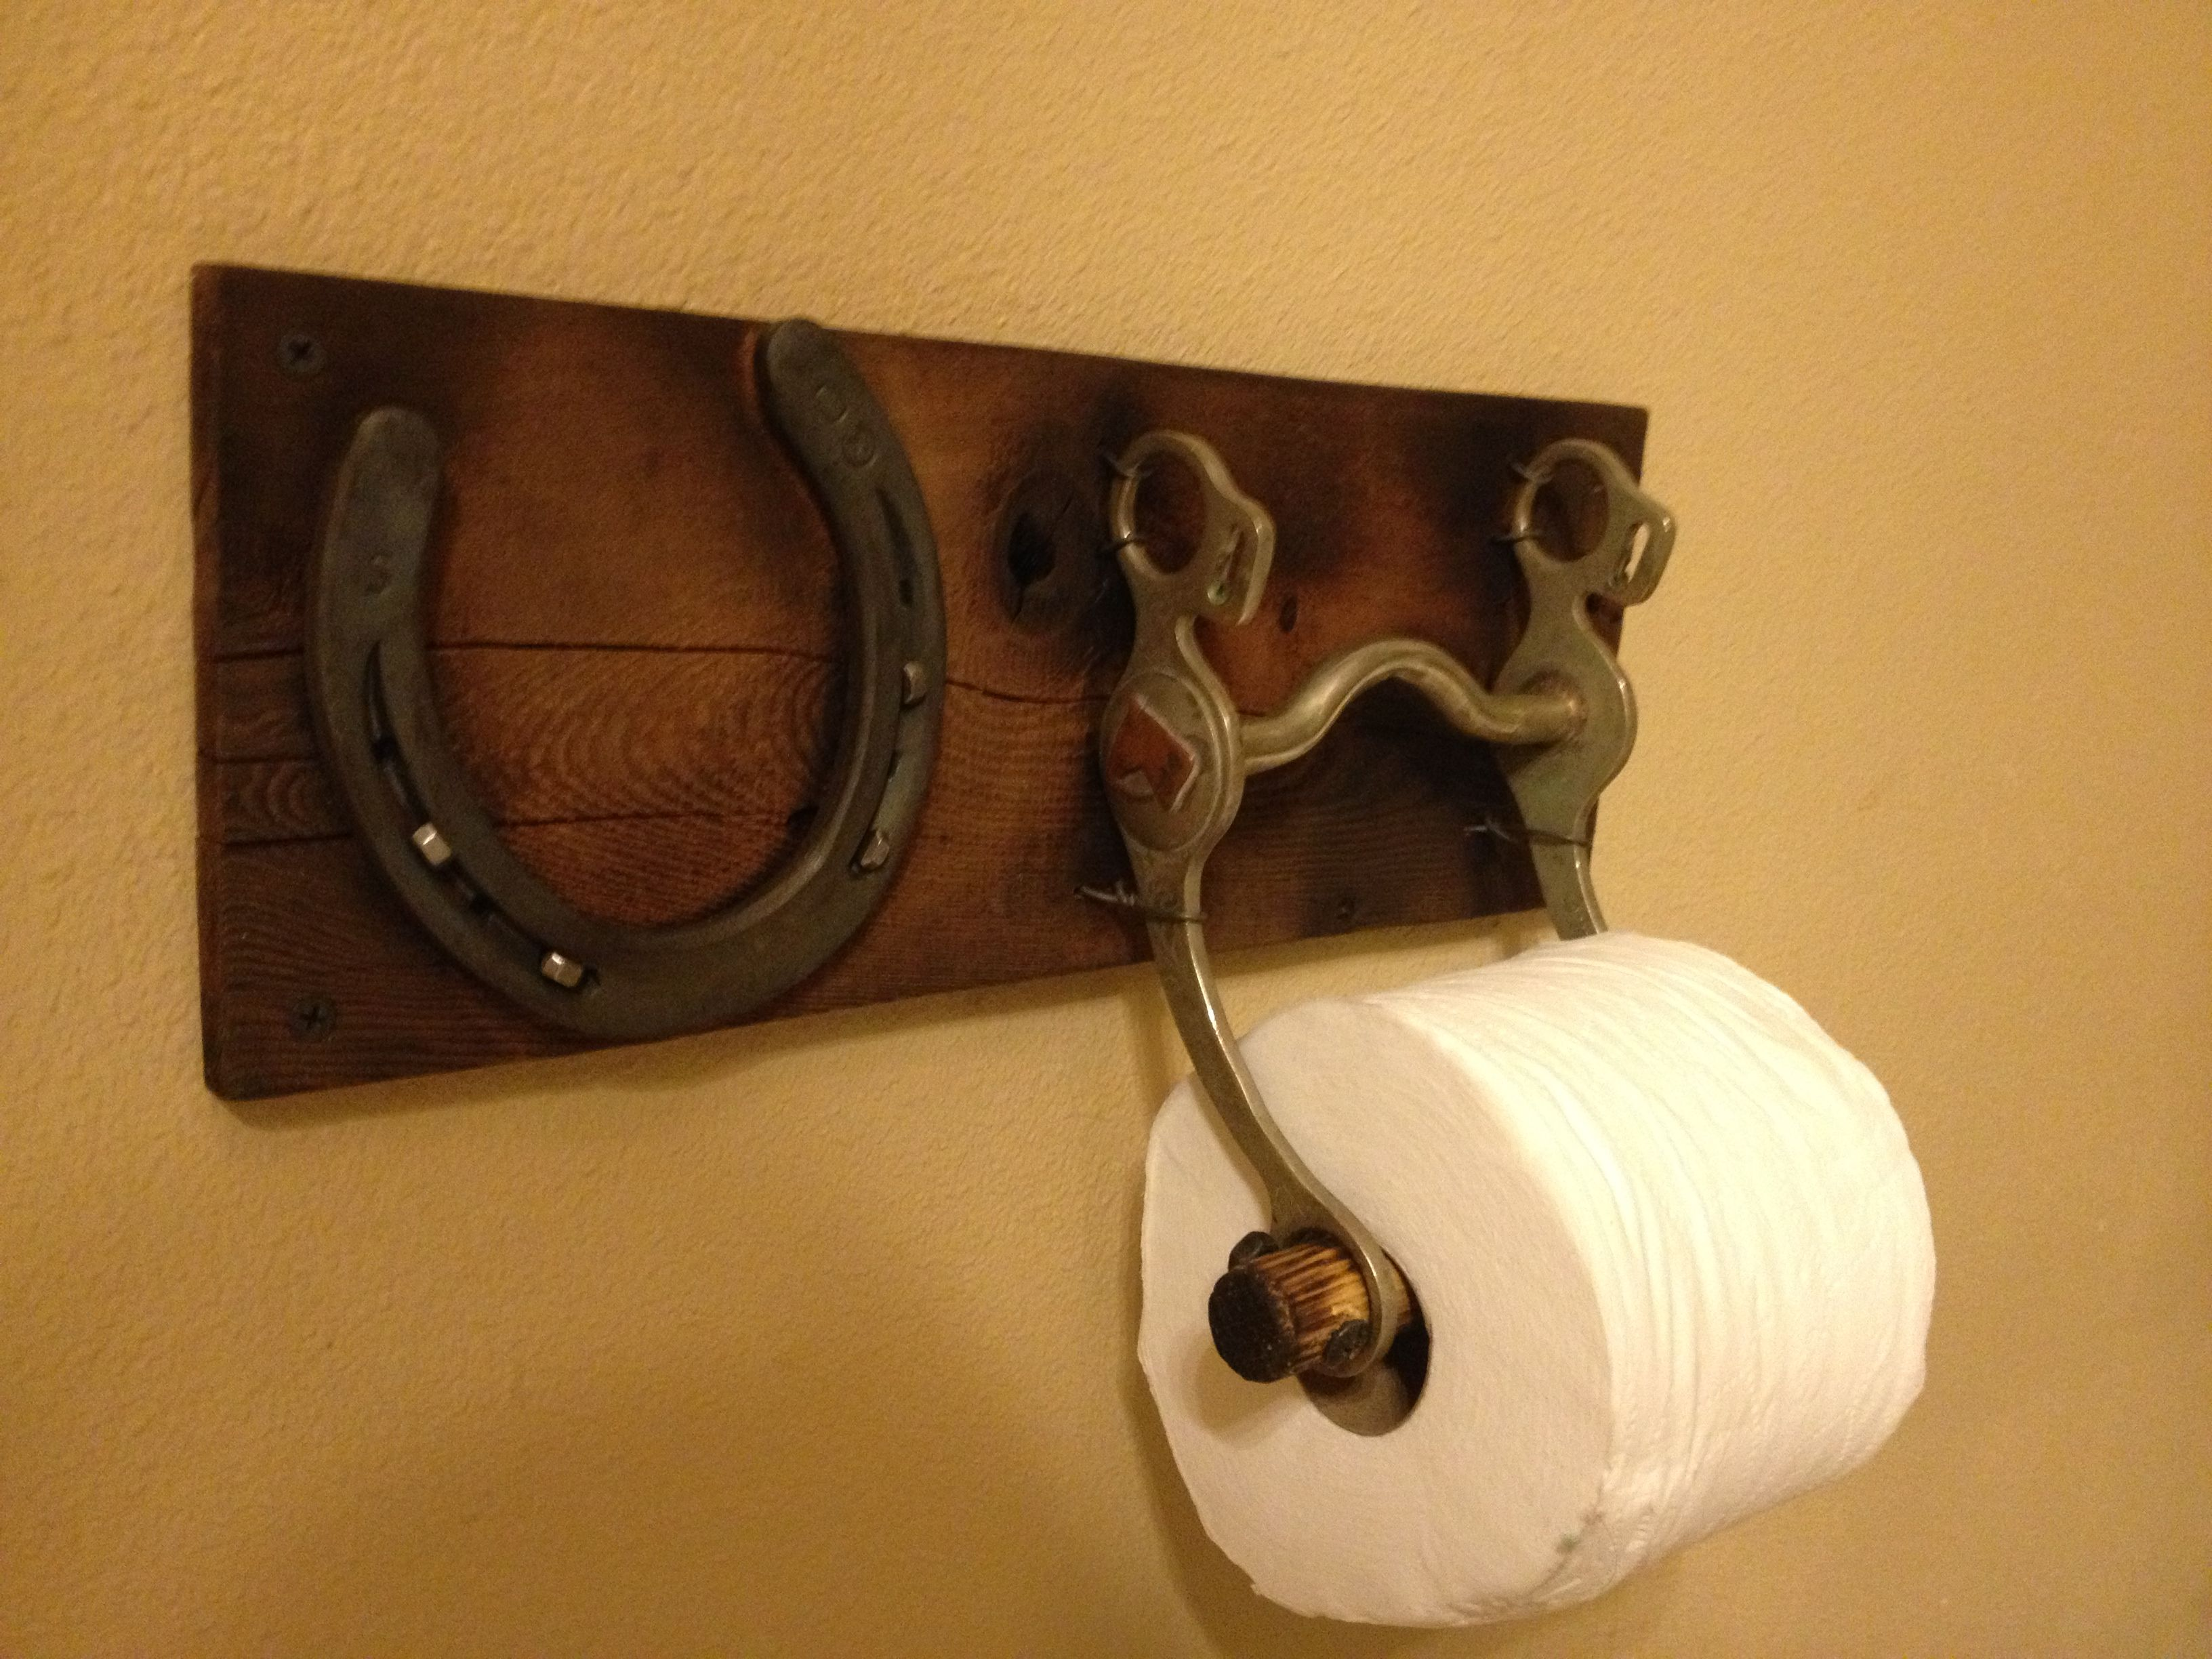 diy toilettenpapierhalter toilet paper holder with an old horse bit and horse shoe - Diy Toilettenpapierhalter Stand